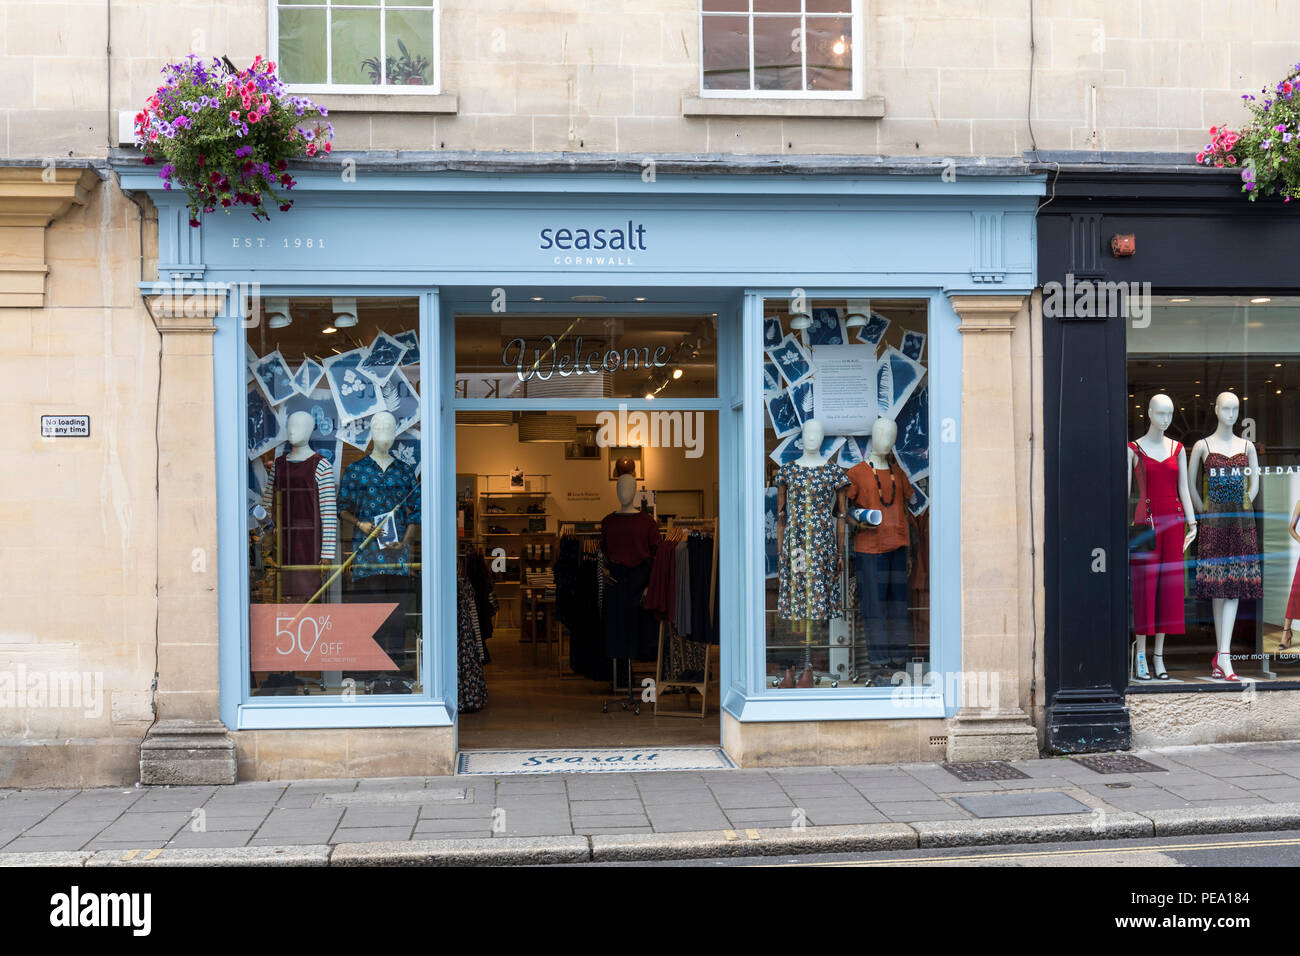 Seasalt Cornwall - Women's clothing store in Bath, England Stock Photo